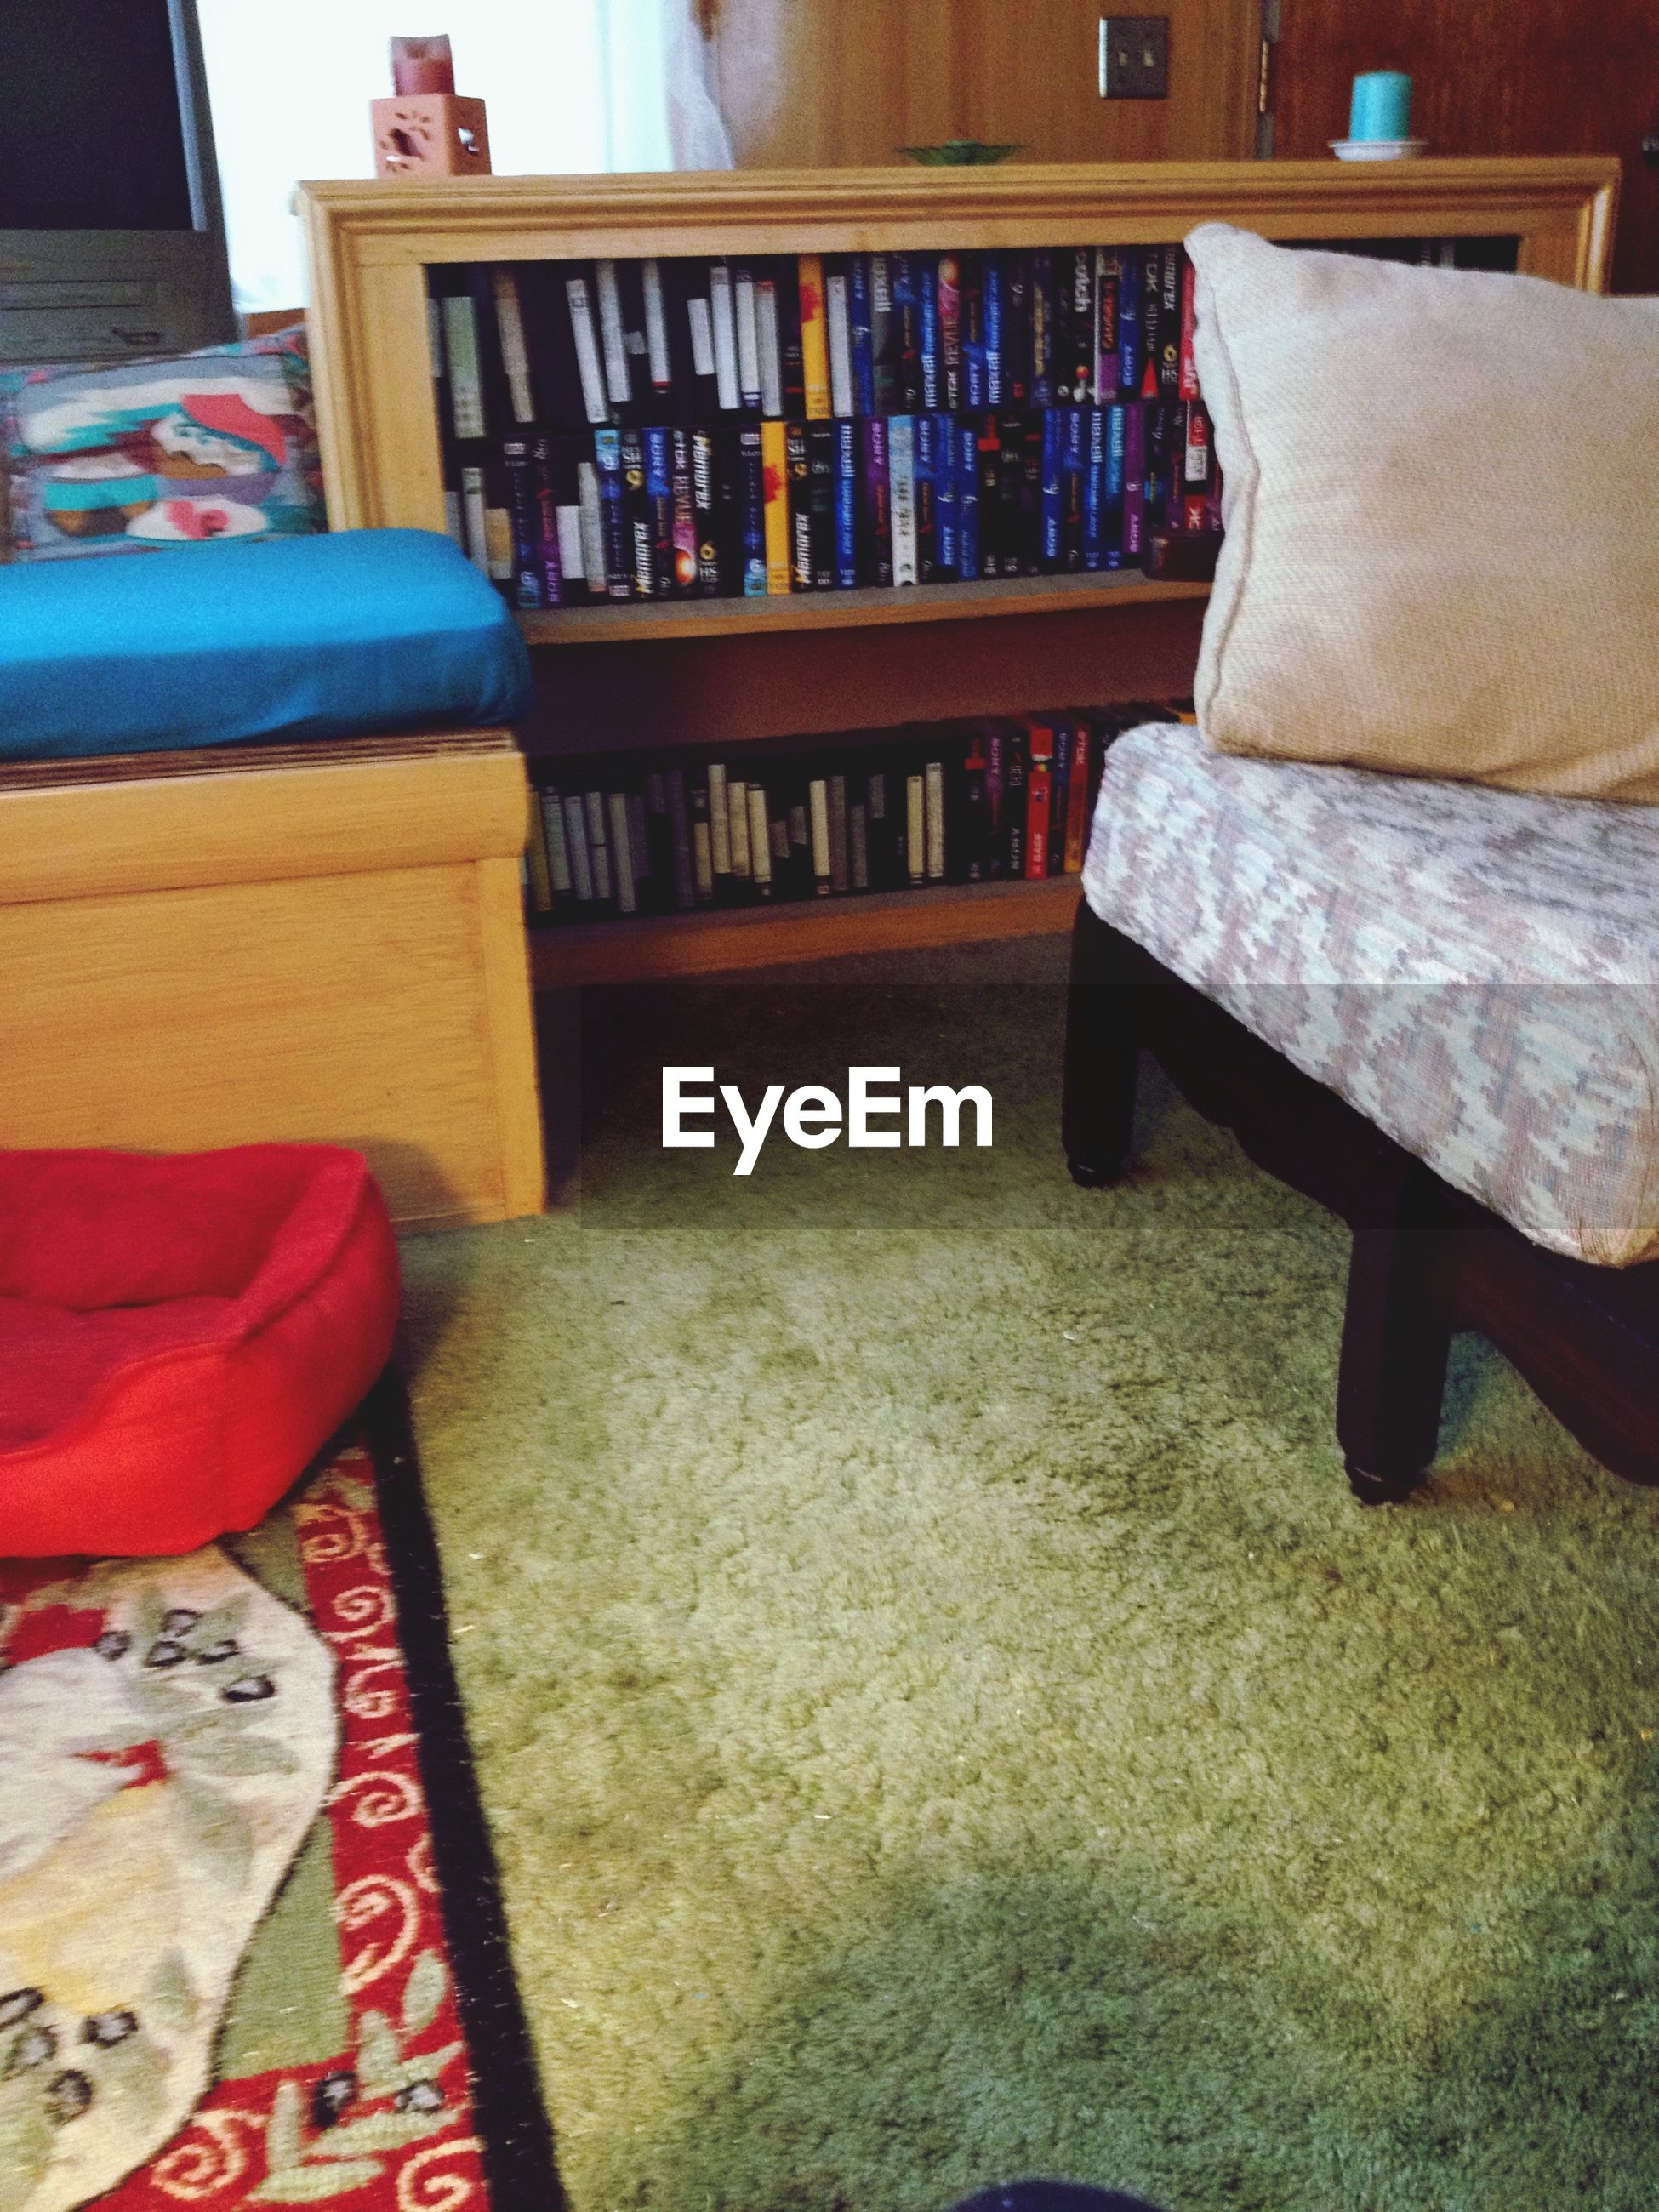 indoors, relaxation, bed, chair, absence, cushion, empty, sofa, table, resting, furniture, book, pillow, home interior, high angle view, blanket, variation, no people, seat, fabric